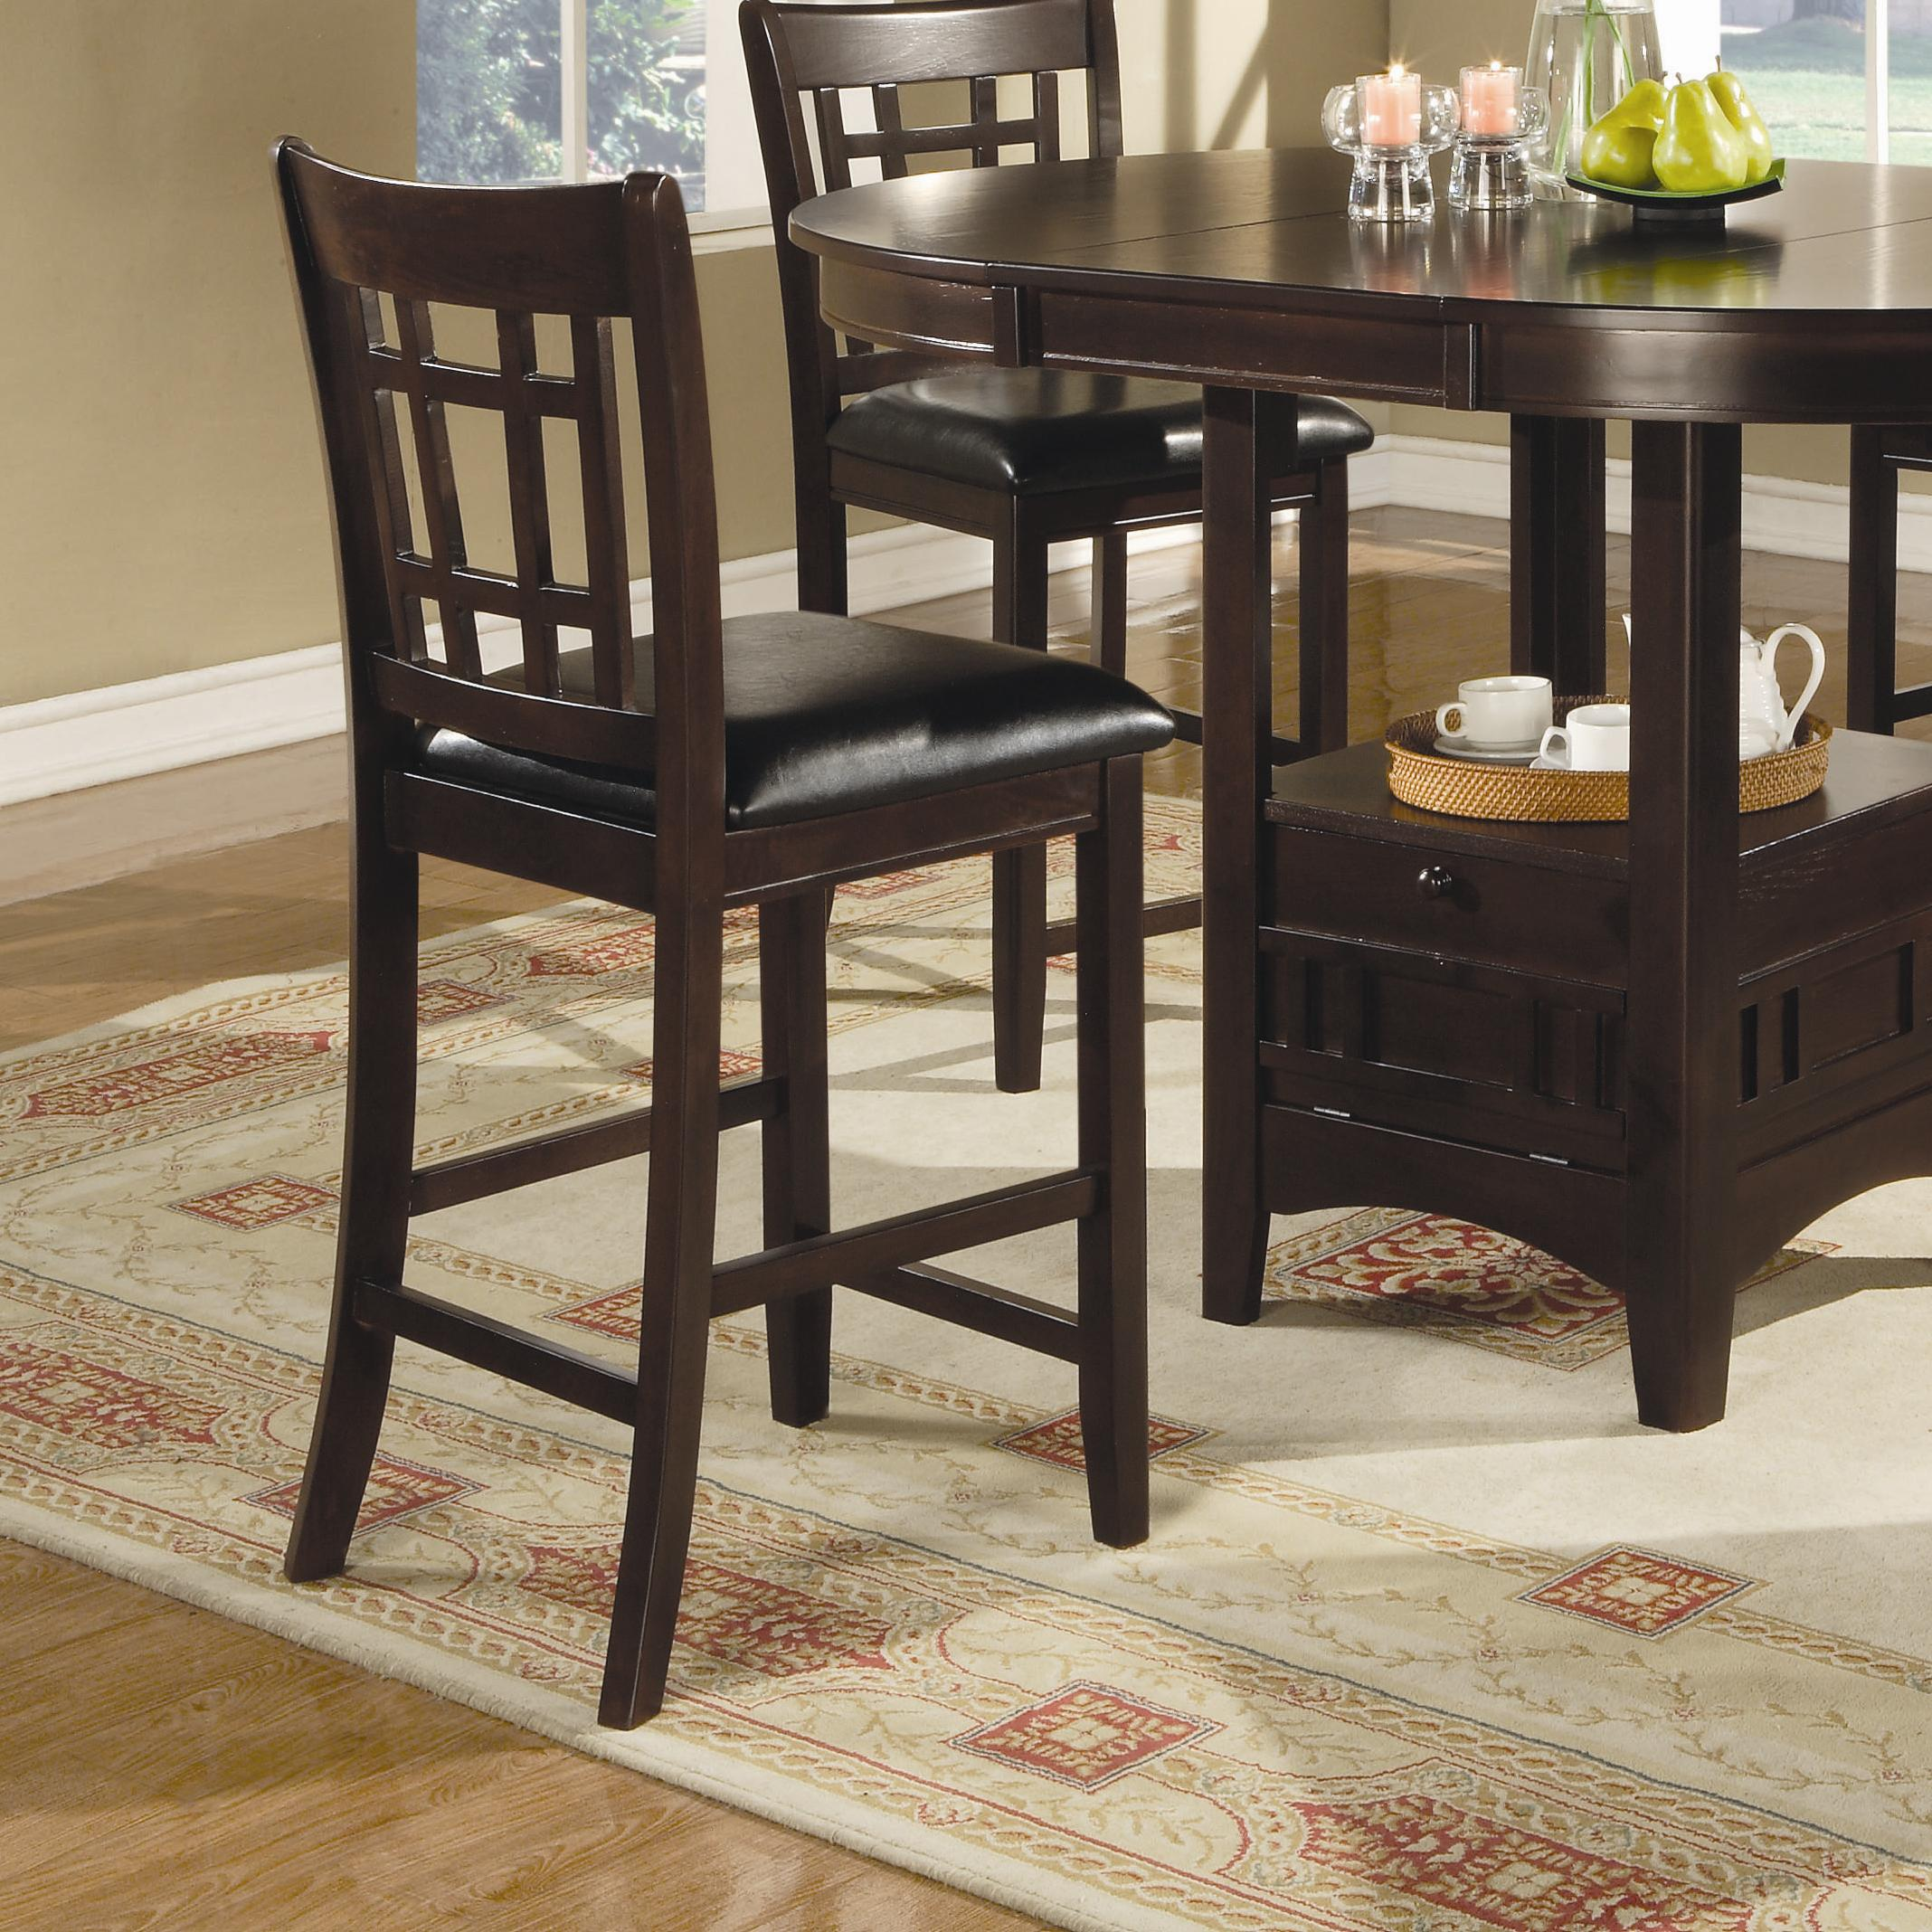 Lavon 24 Inch Bar Stool by Coaster at Standard Furniture